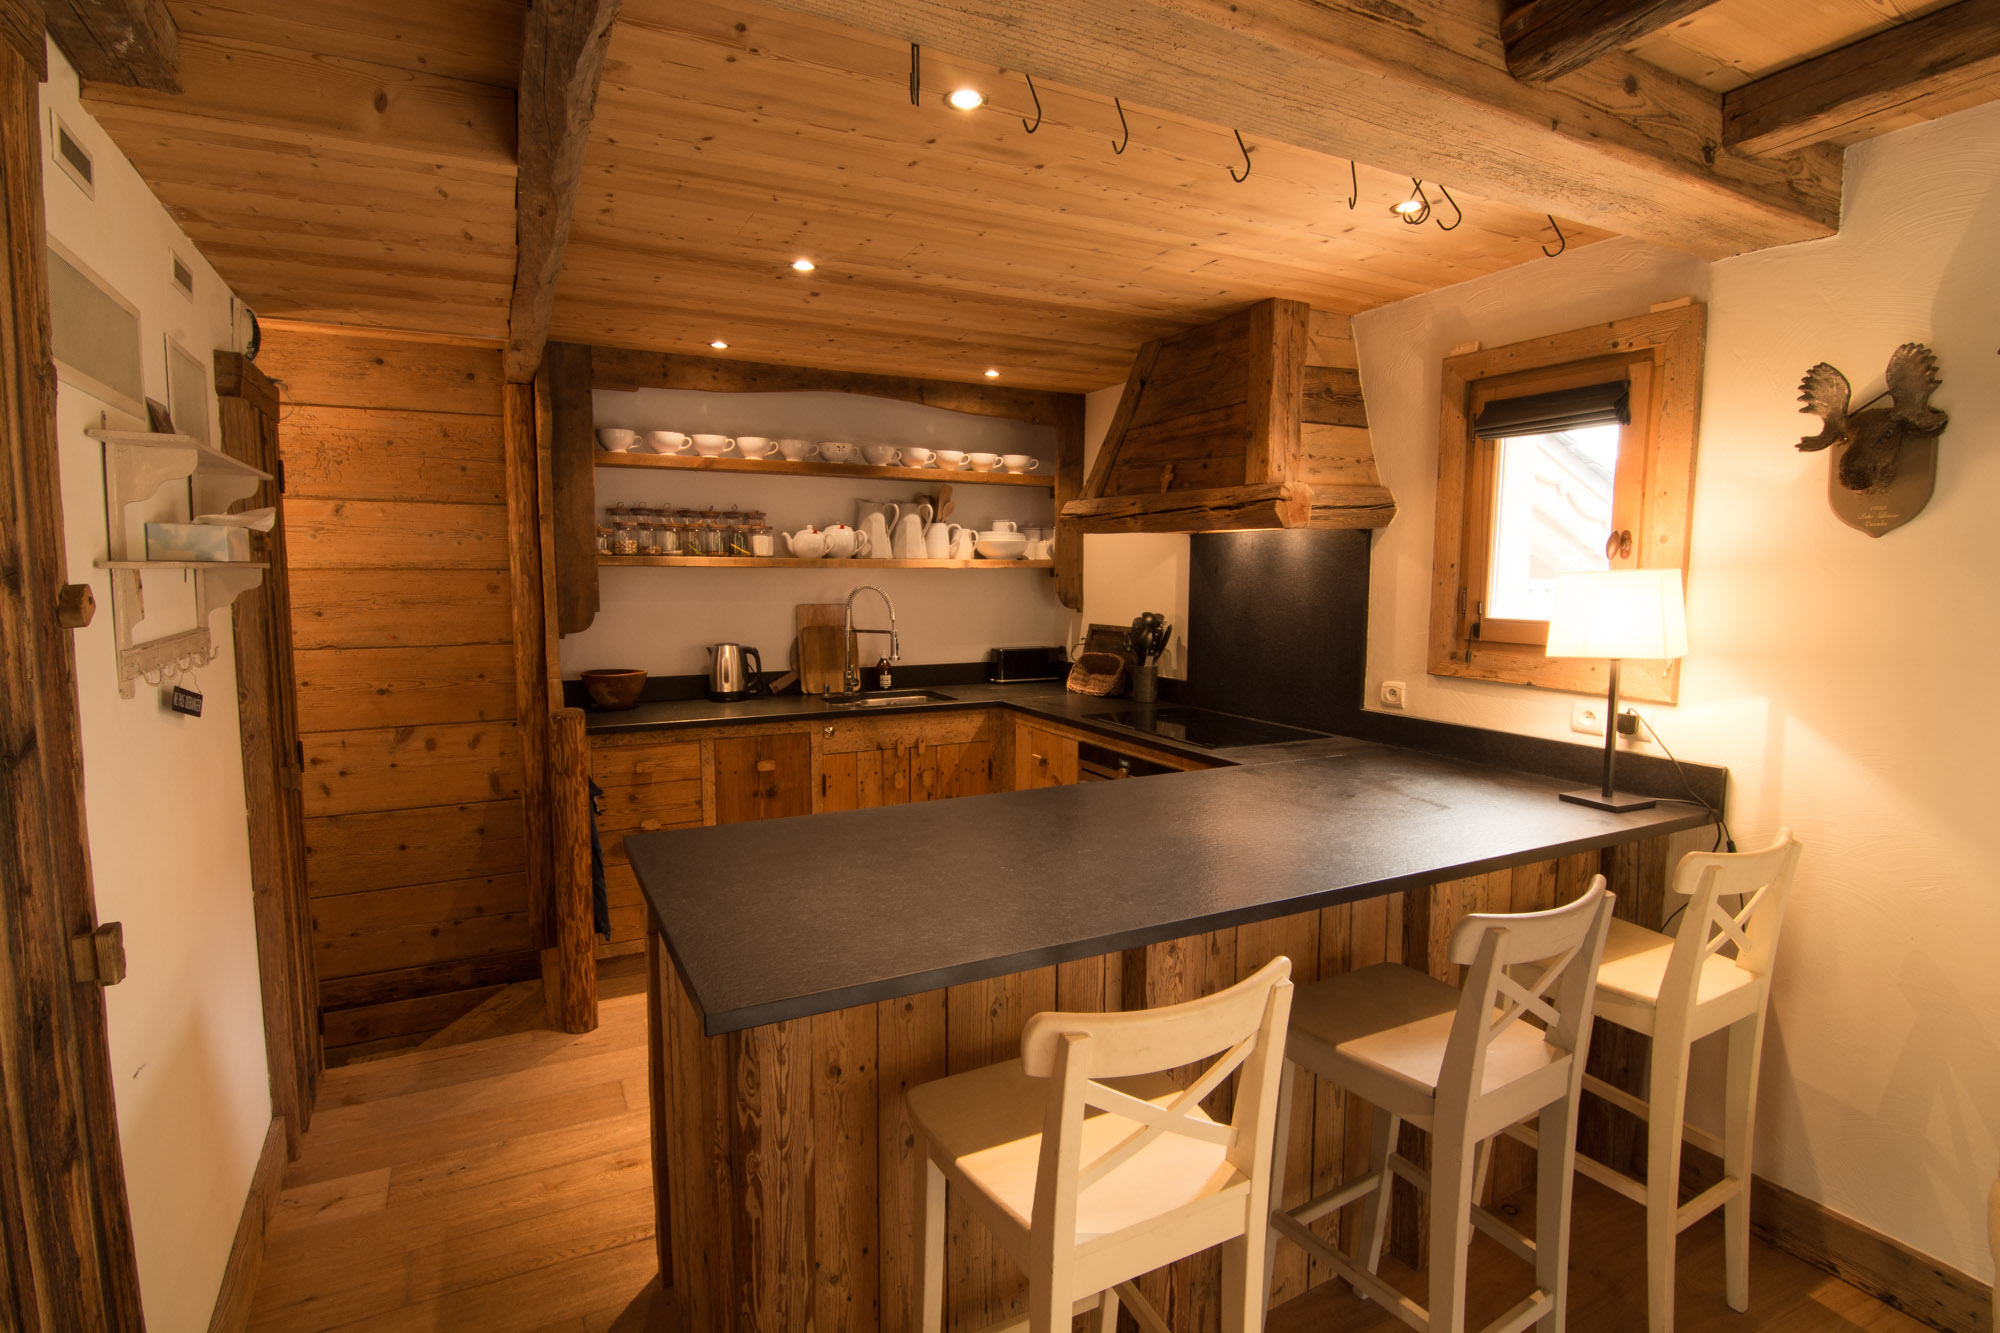 Large Alpine kitchen, well equipped for self-catered holidays